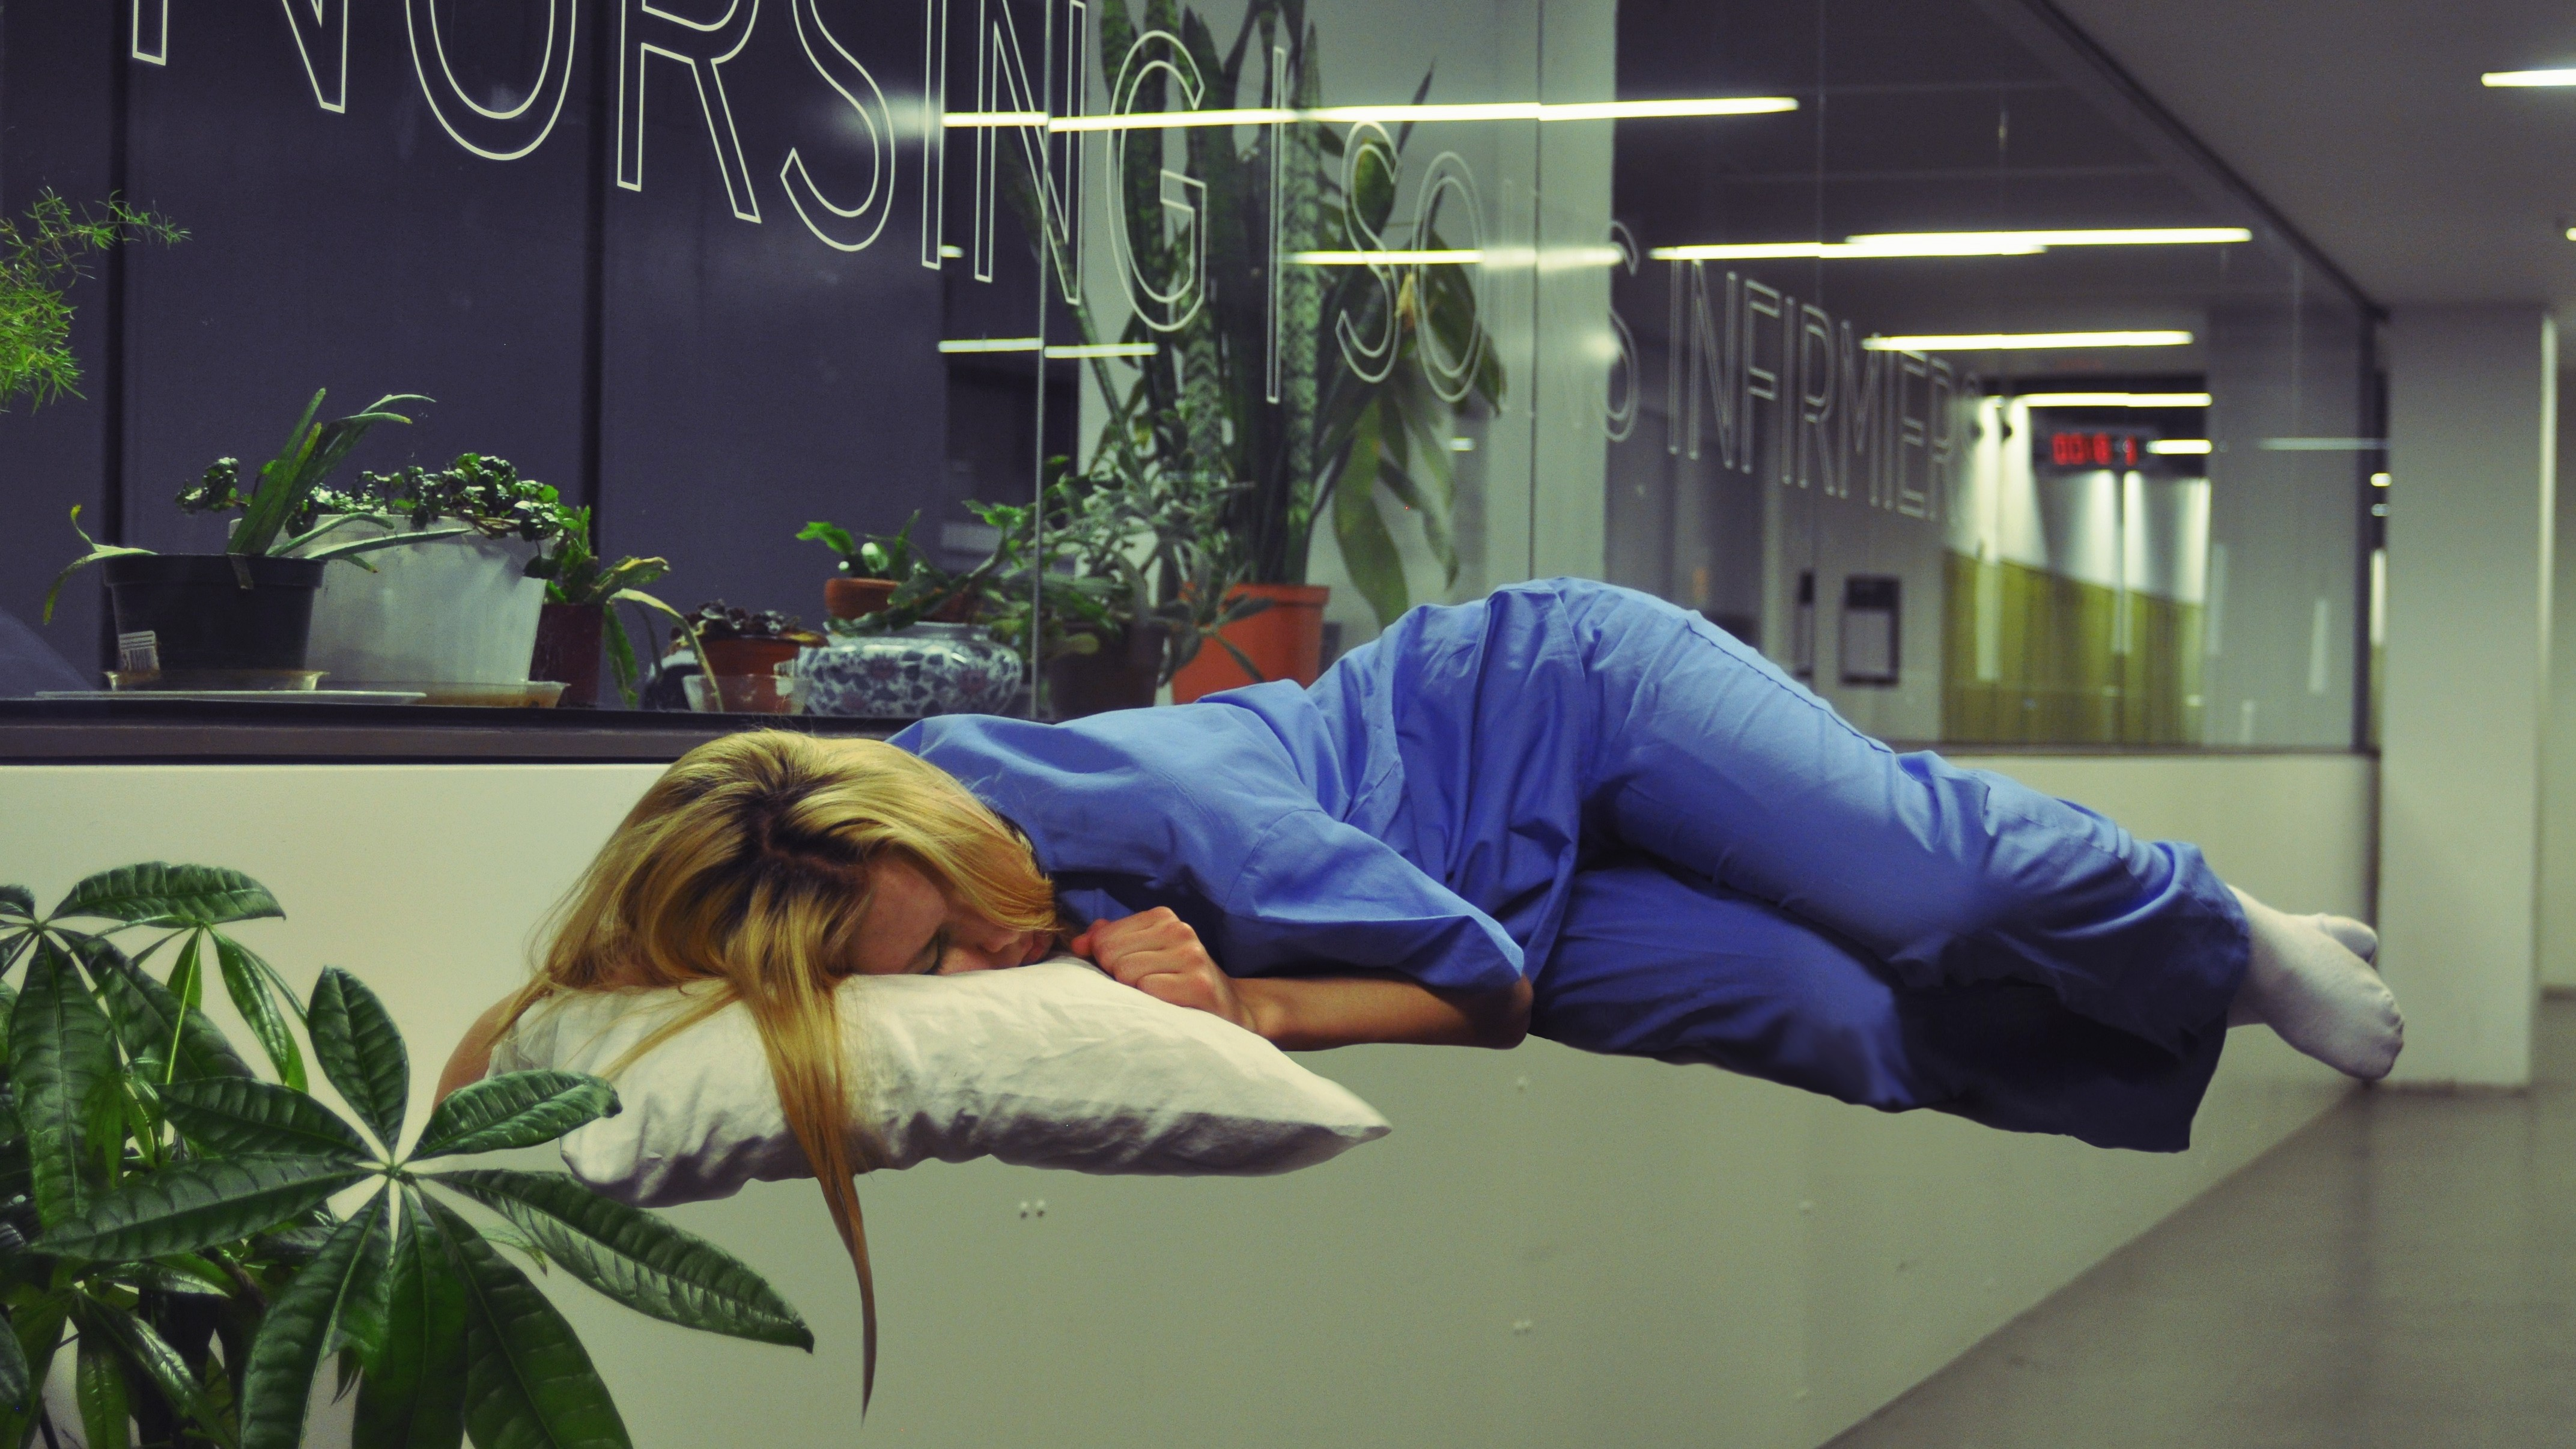 The Graveyard Shift: the Nurse Who Sleeps in Naps